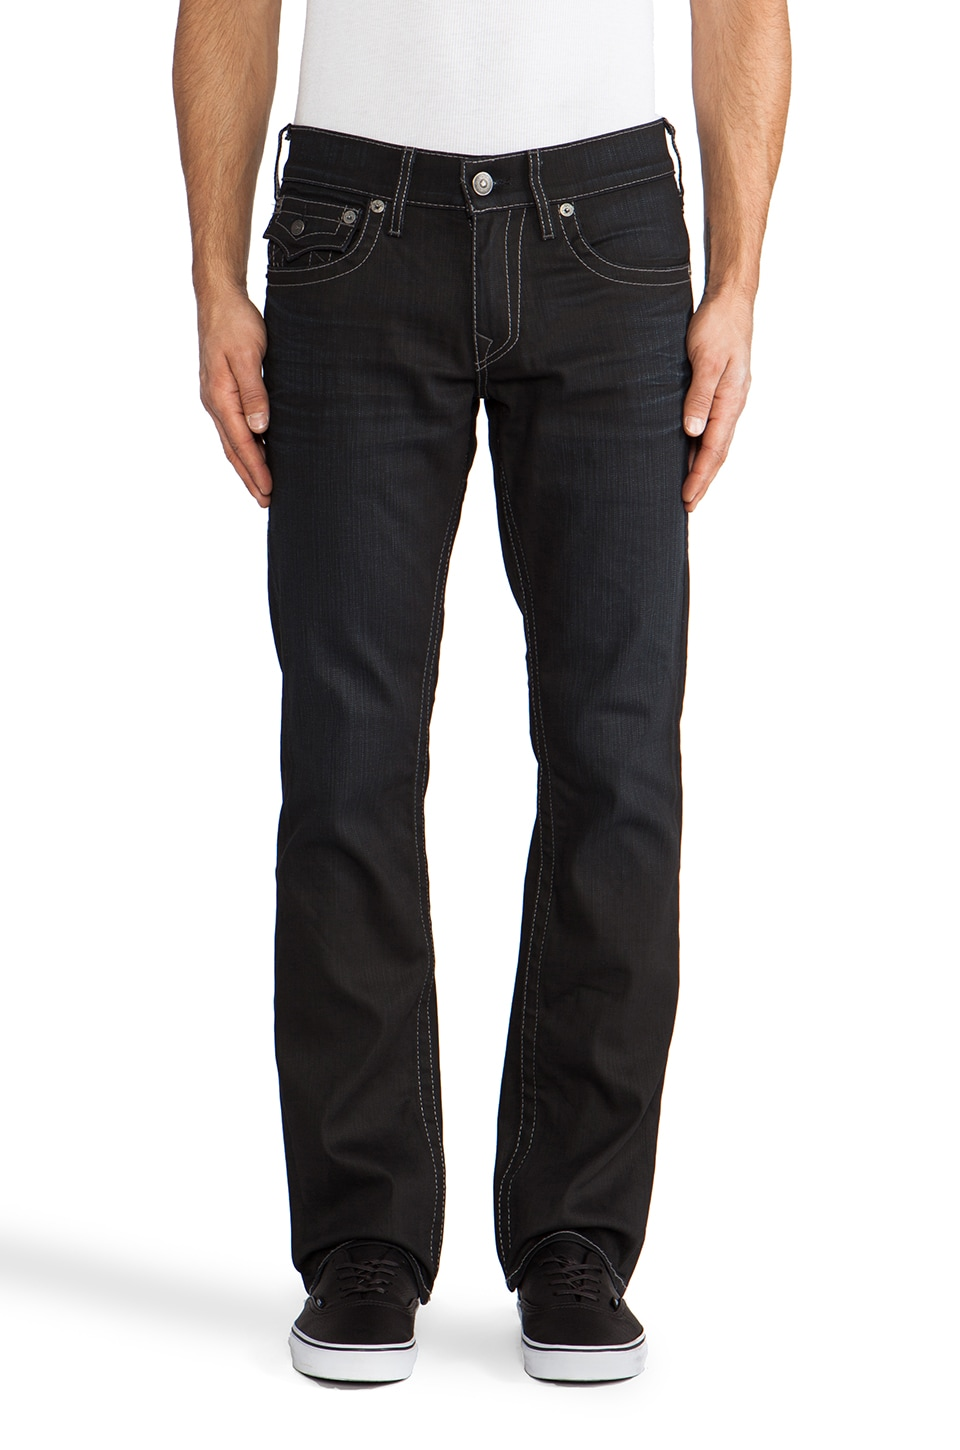 True Religion Ricky Straight Leg Coated Denim in Black Rider